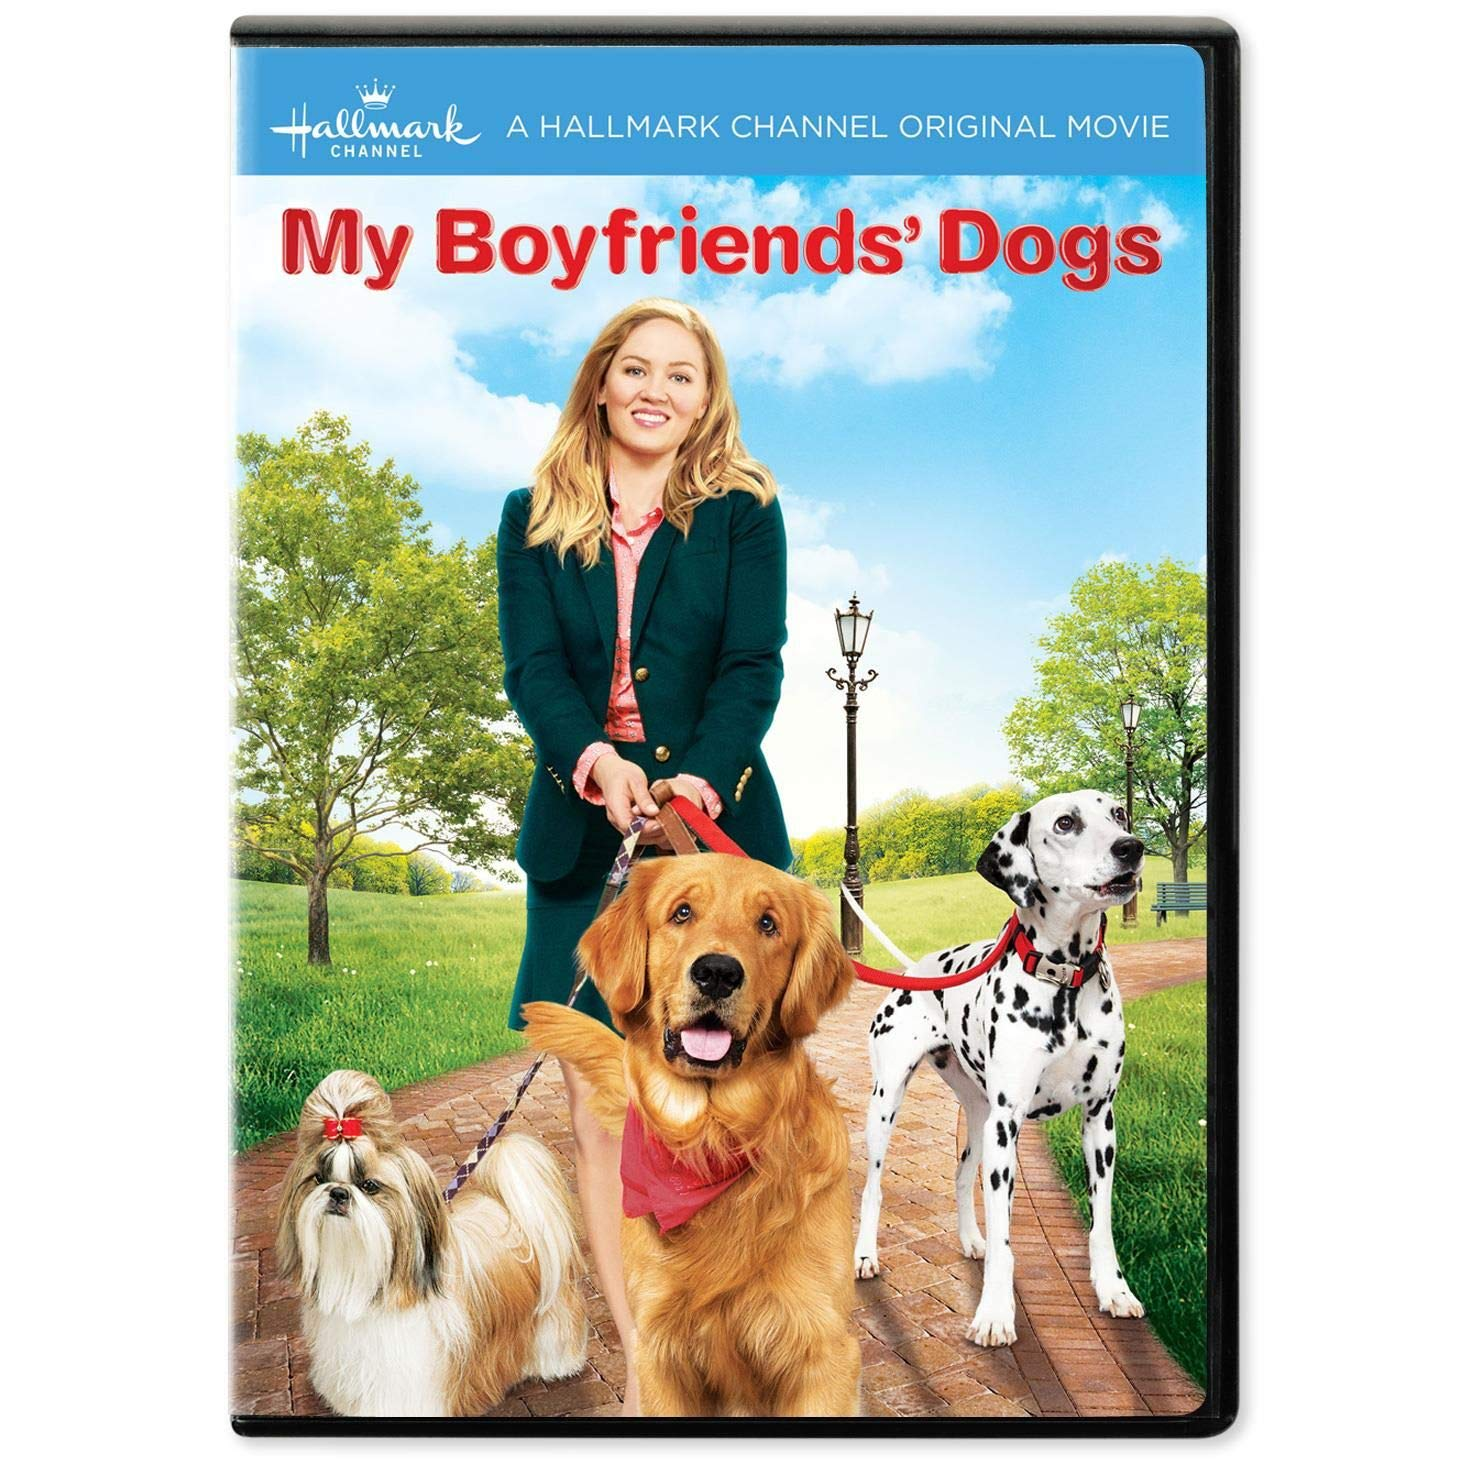 Hallmark My Boyfriends' Dogs Channel Romance